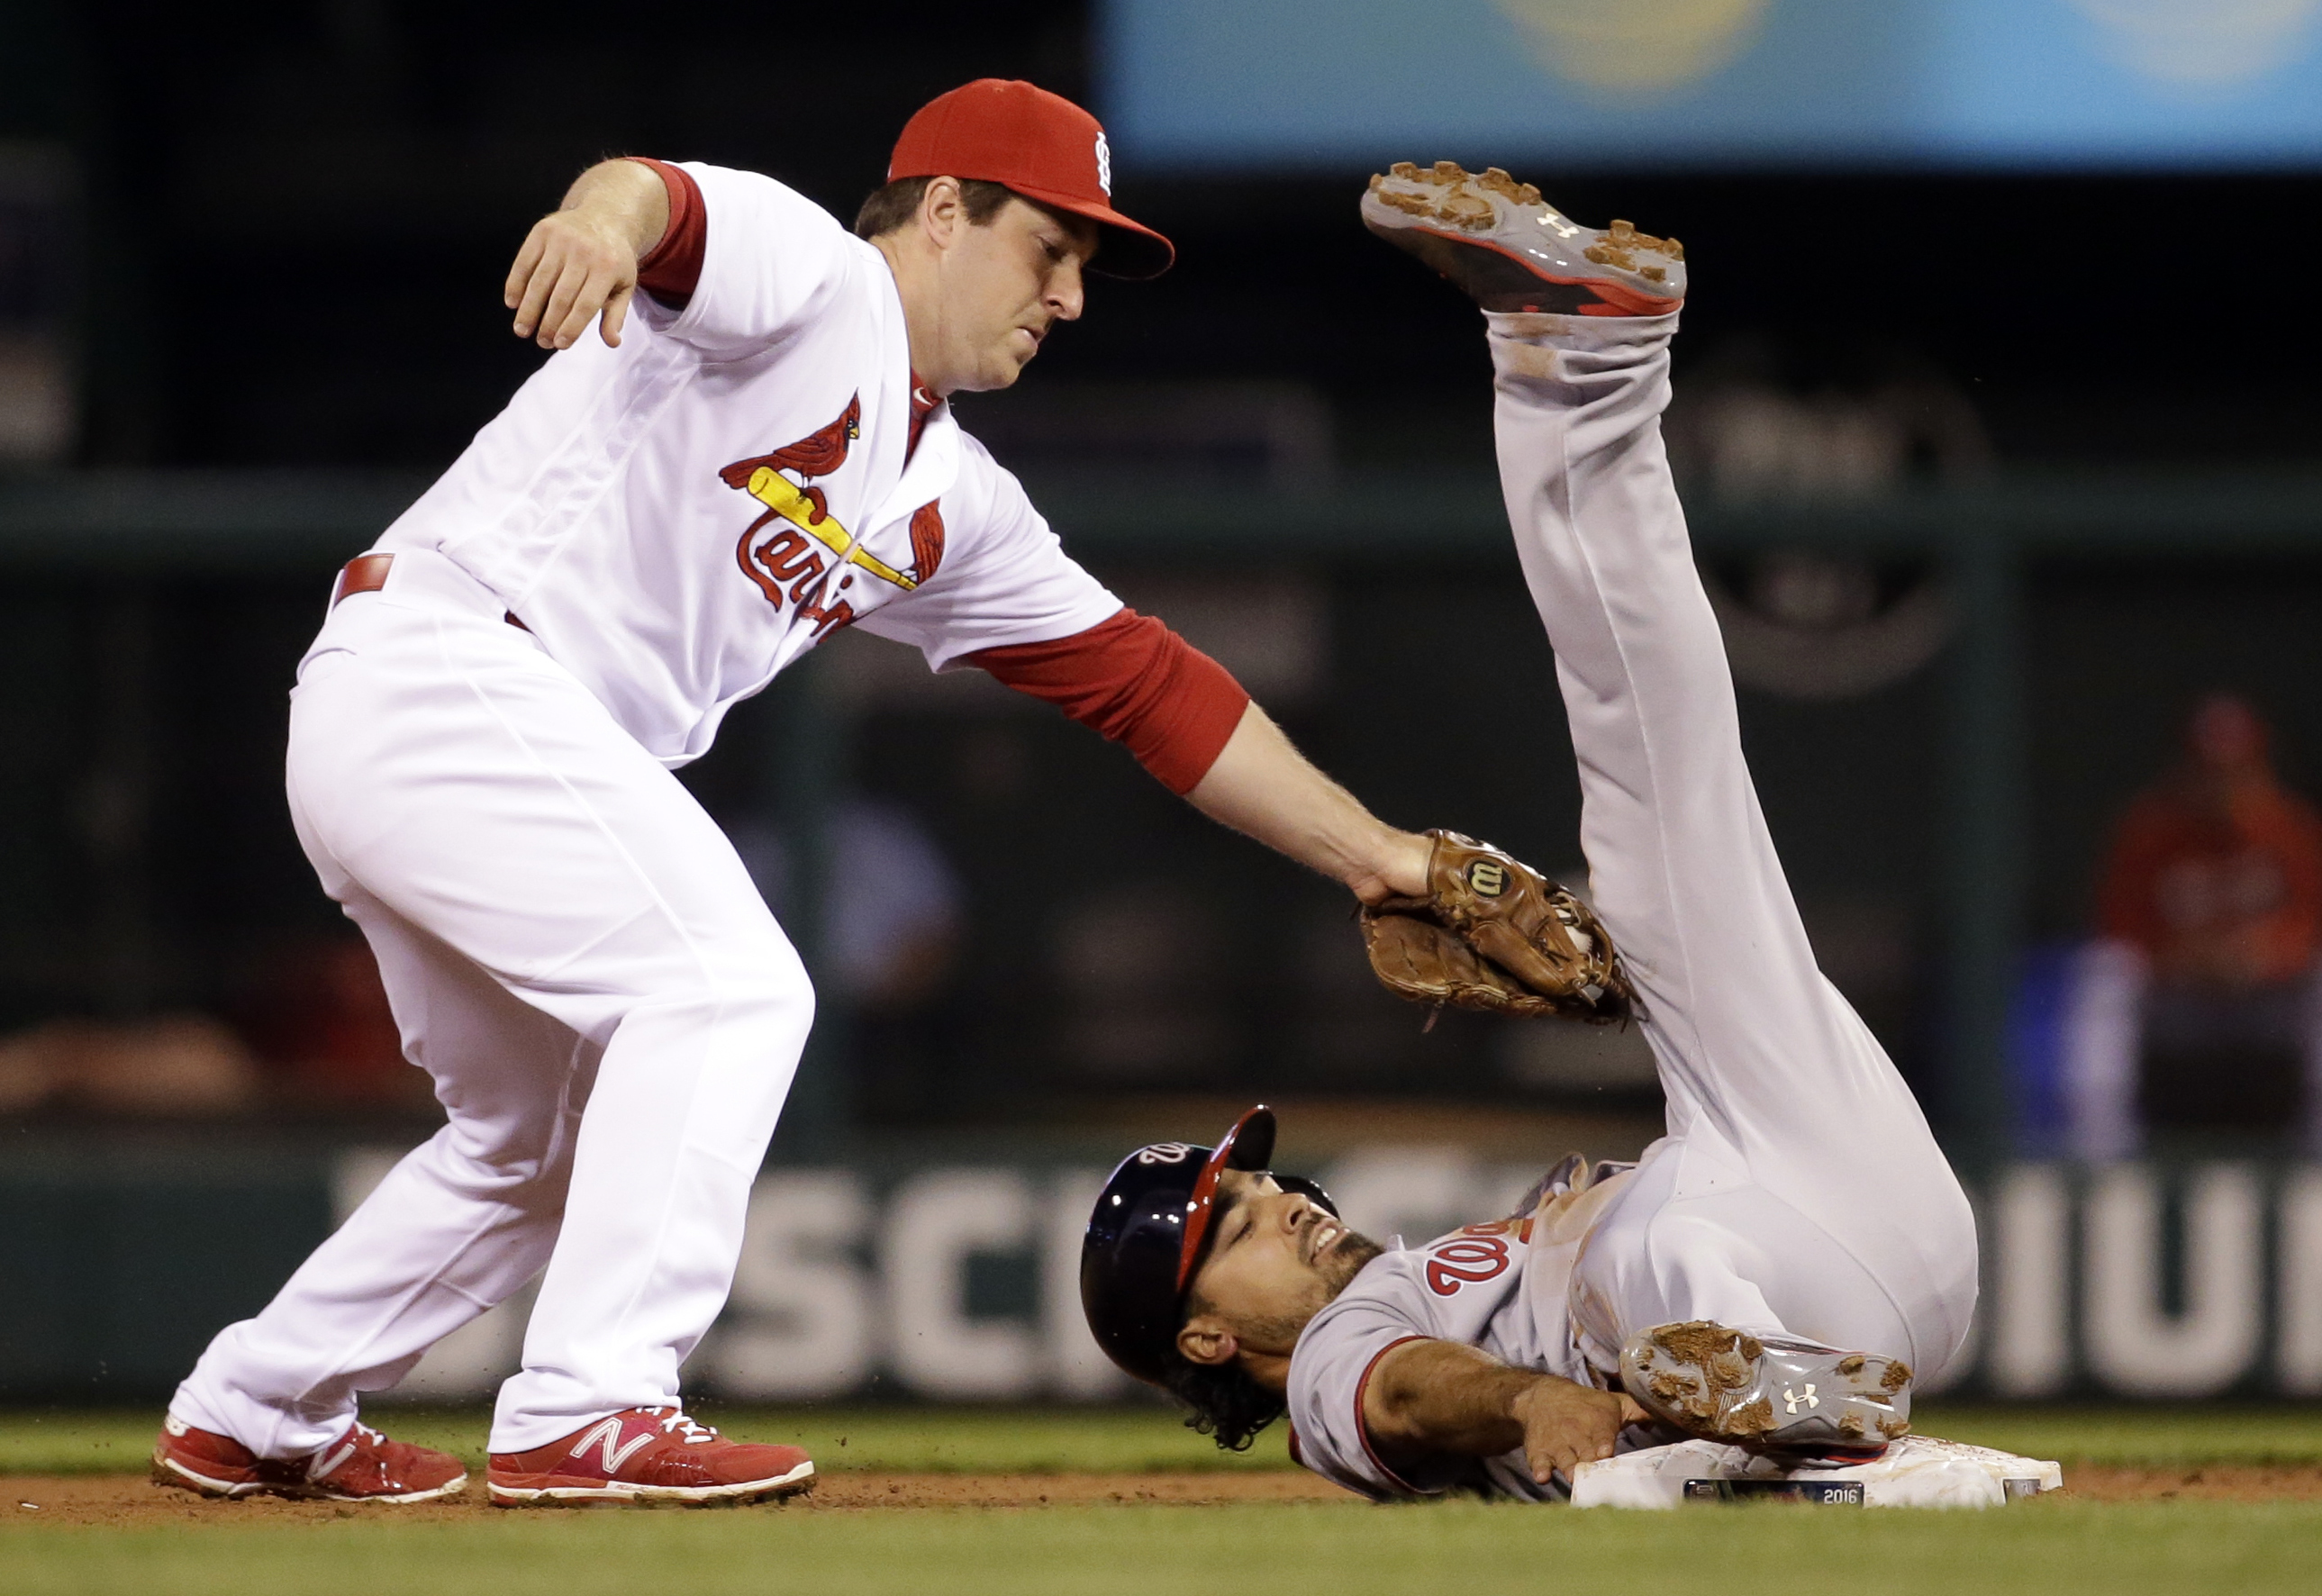 Washington Nationals' Anthony Rendon, right, is tagged at second by St. Louis Cardinals shortstop Jedd Gyorko and ruled out during the fourth inning of a baseball game Friday, April 29, 2016, in St. Louis. The call was reversed after video review and Rend